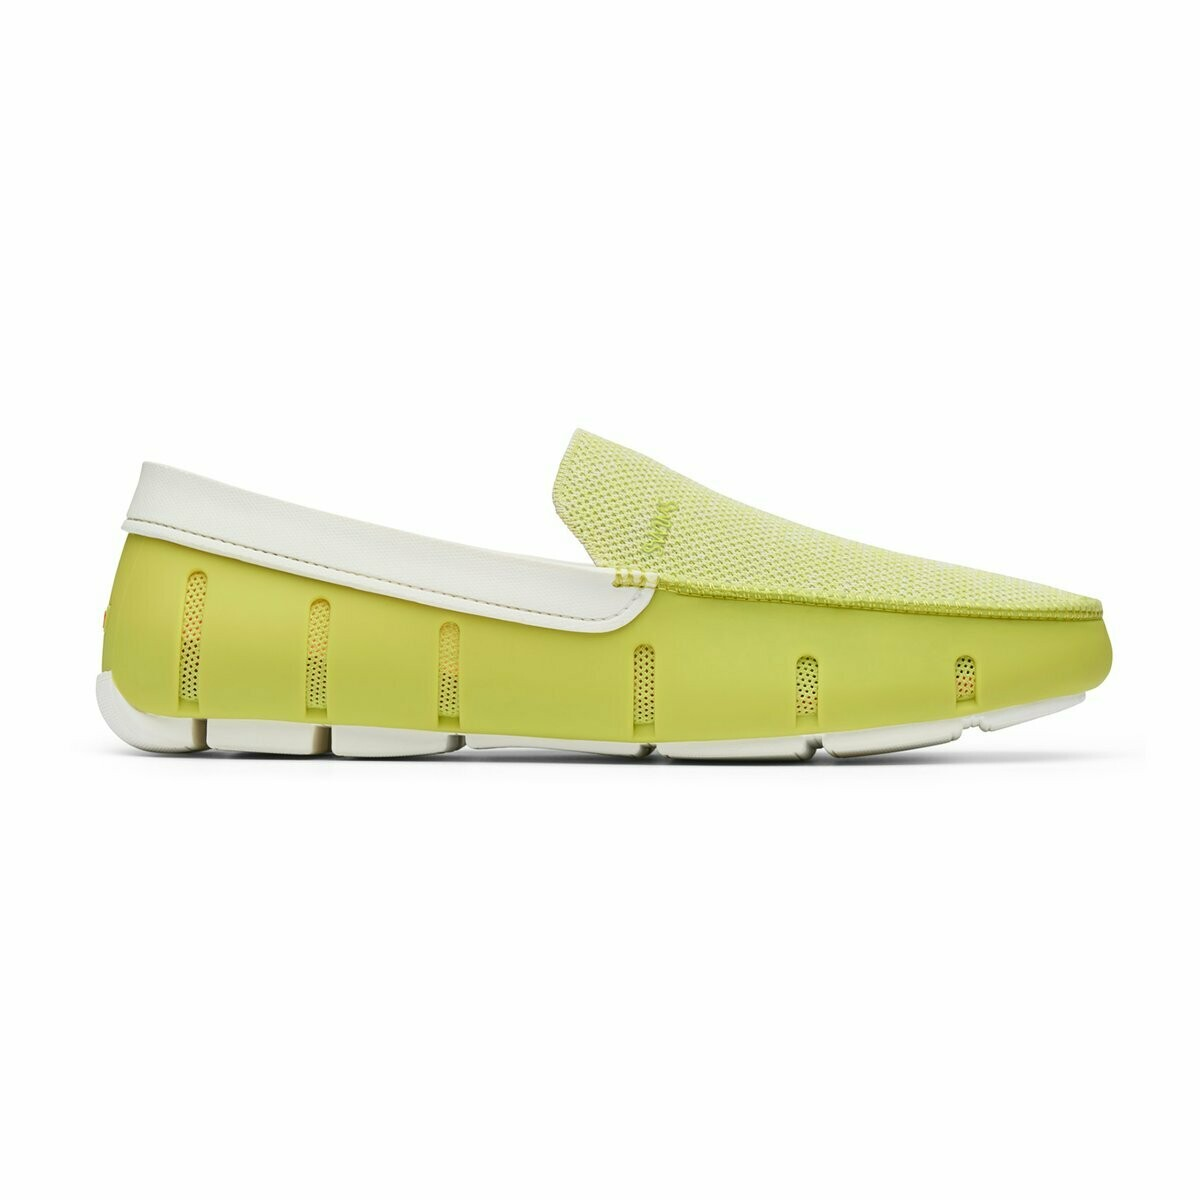 Swims Classic Venetian Loafer in Limeade